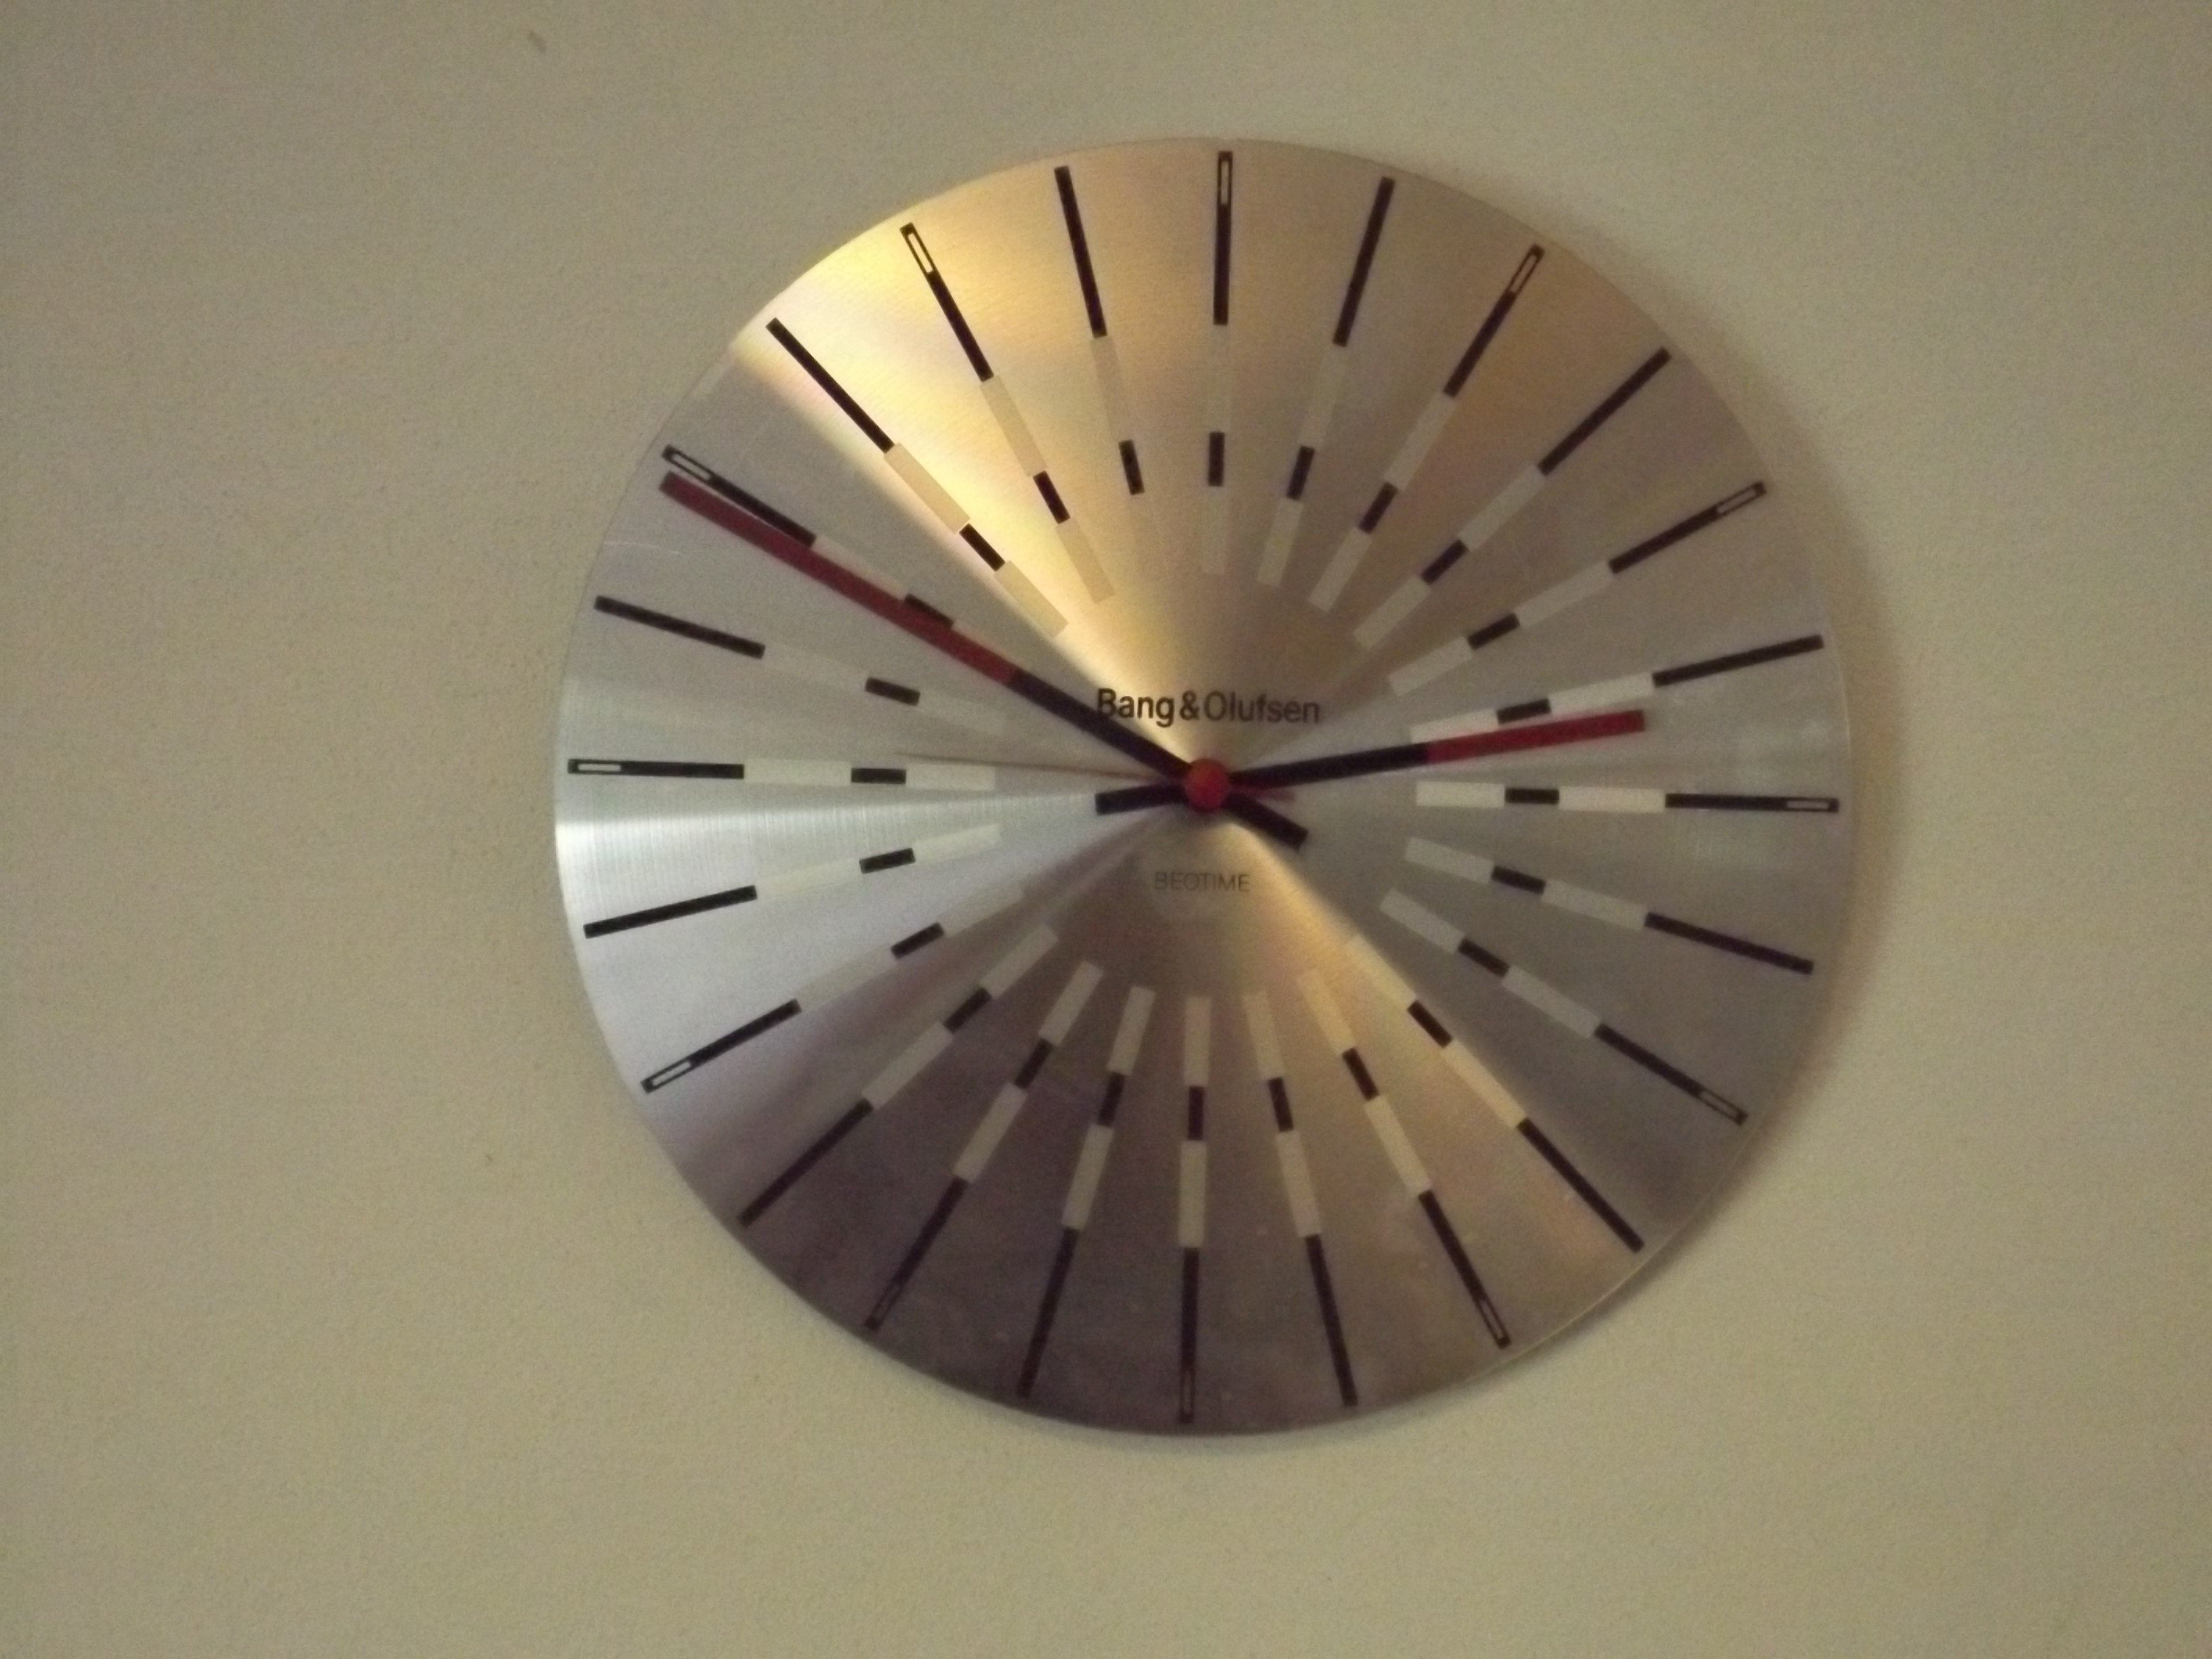 Beotime clock by Bang and Olufsen - 1970s